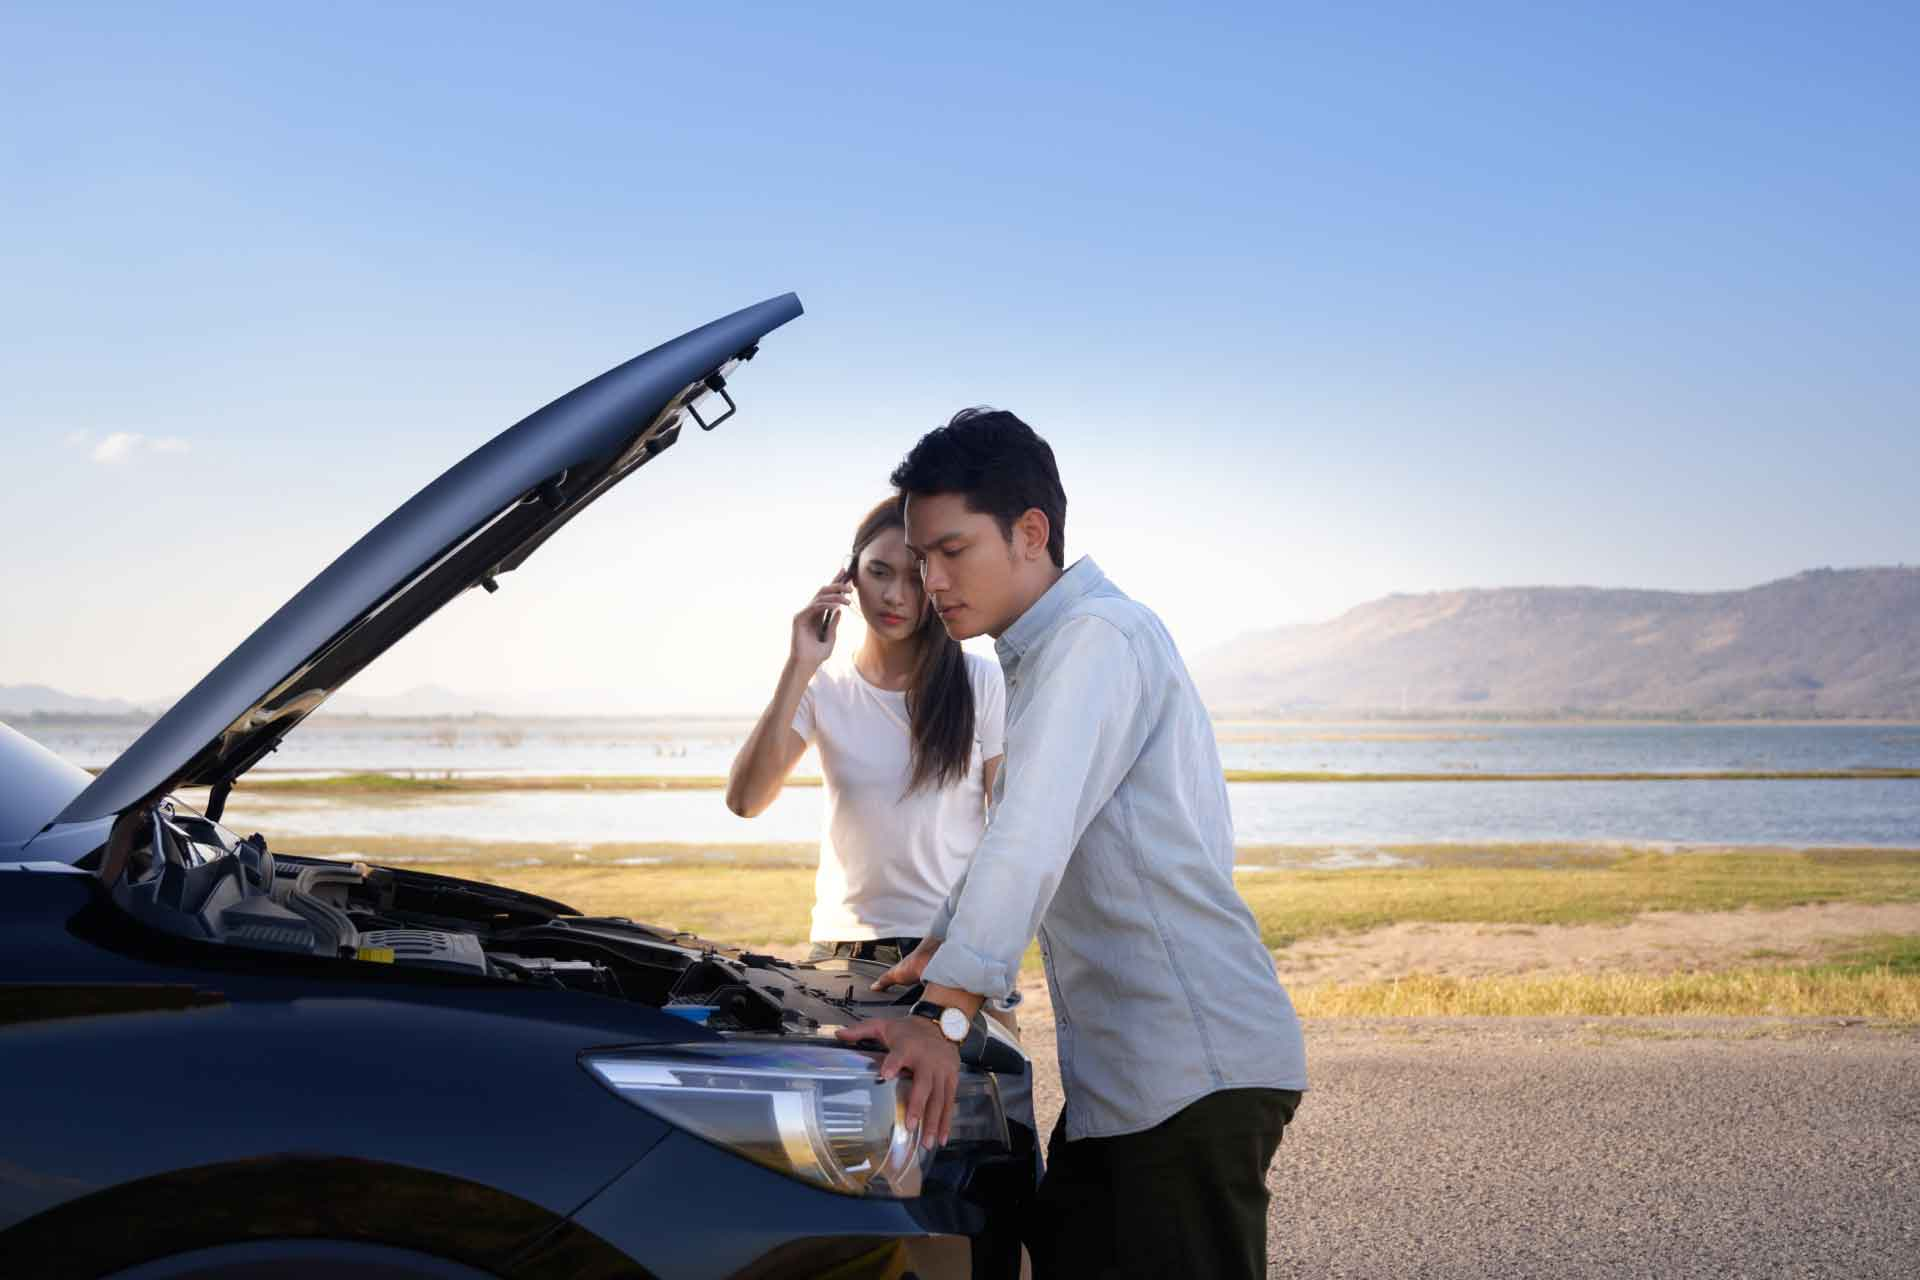 Contact Hattisburg Towing Pros for 24-hour Emergency auto towing service in Hattisburg, MS